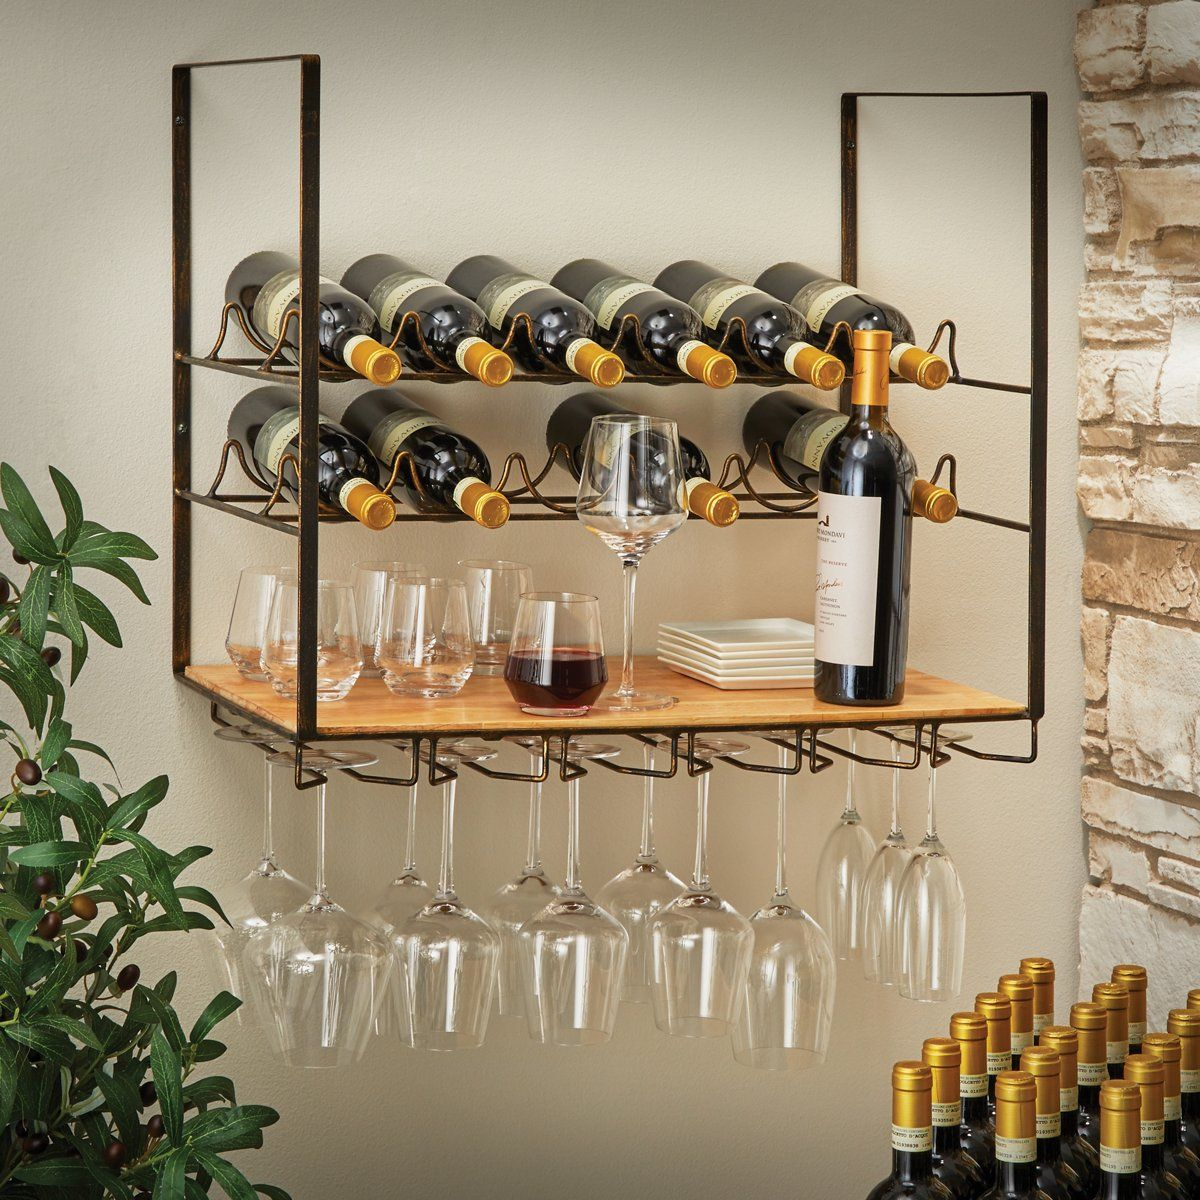 12 Bottle Wall Mounted Wine Rack And Stemware Holder Wall